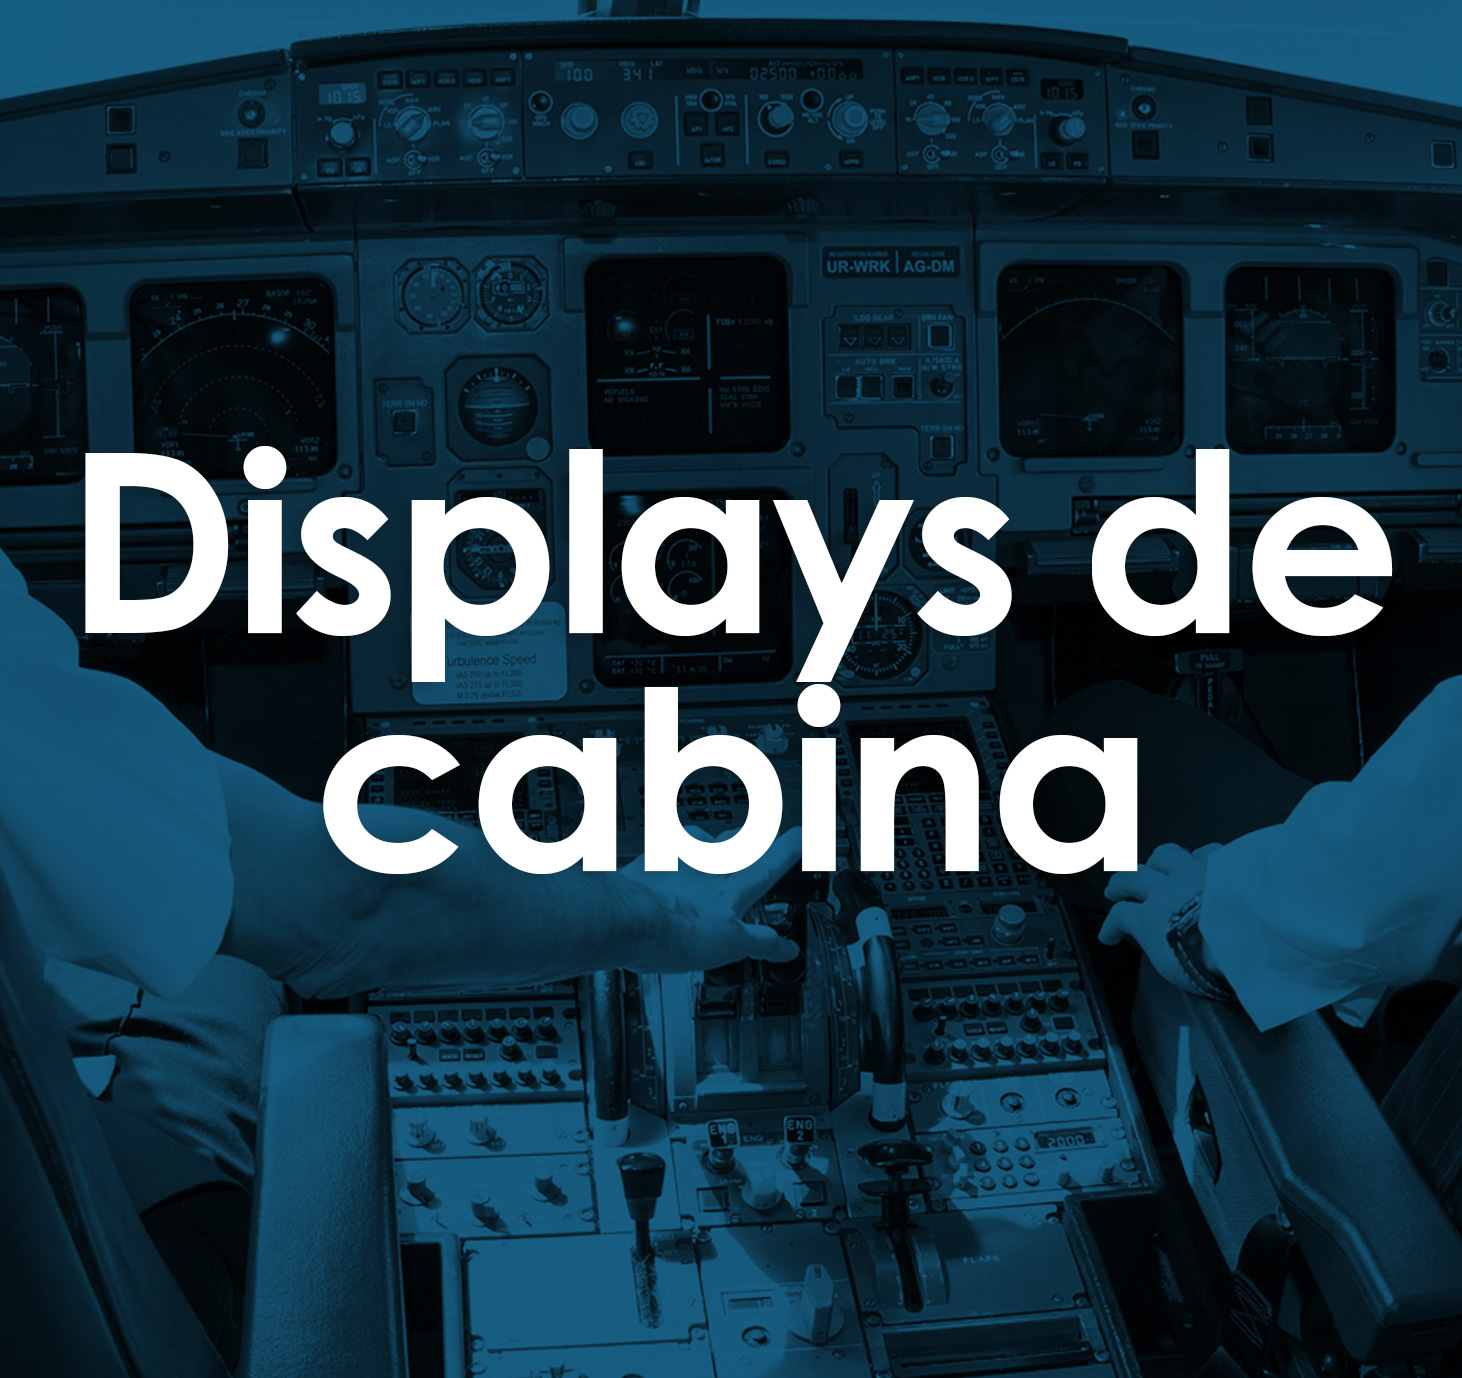 Displays de cabina